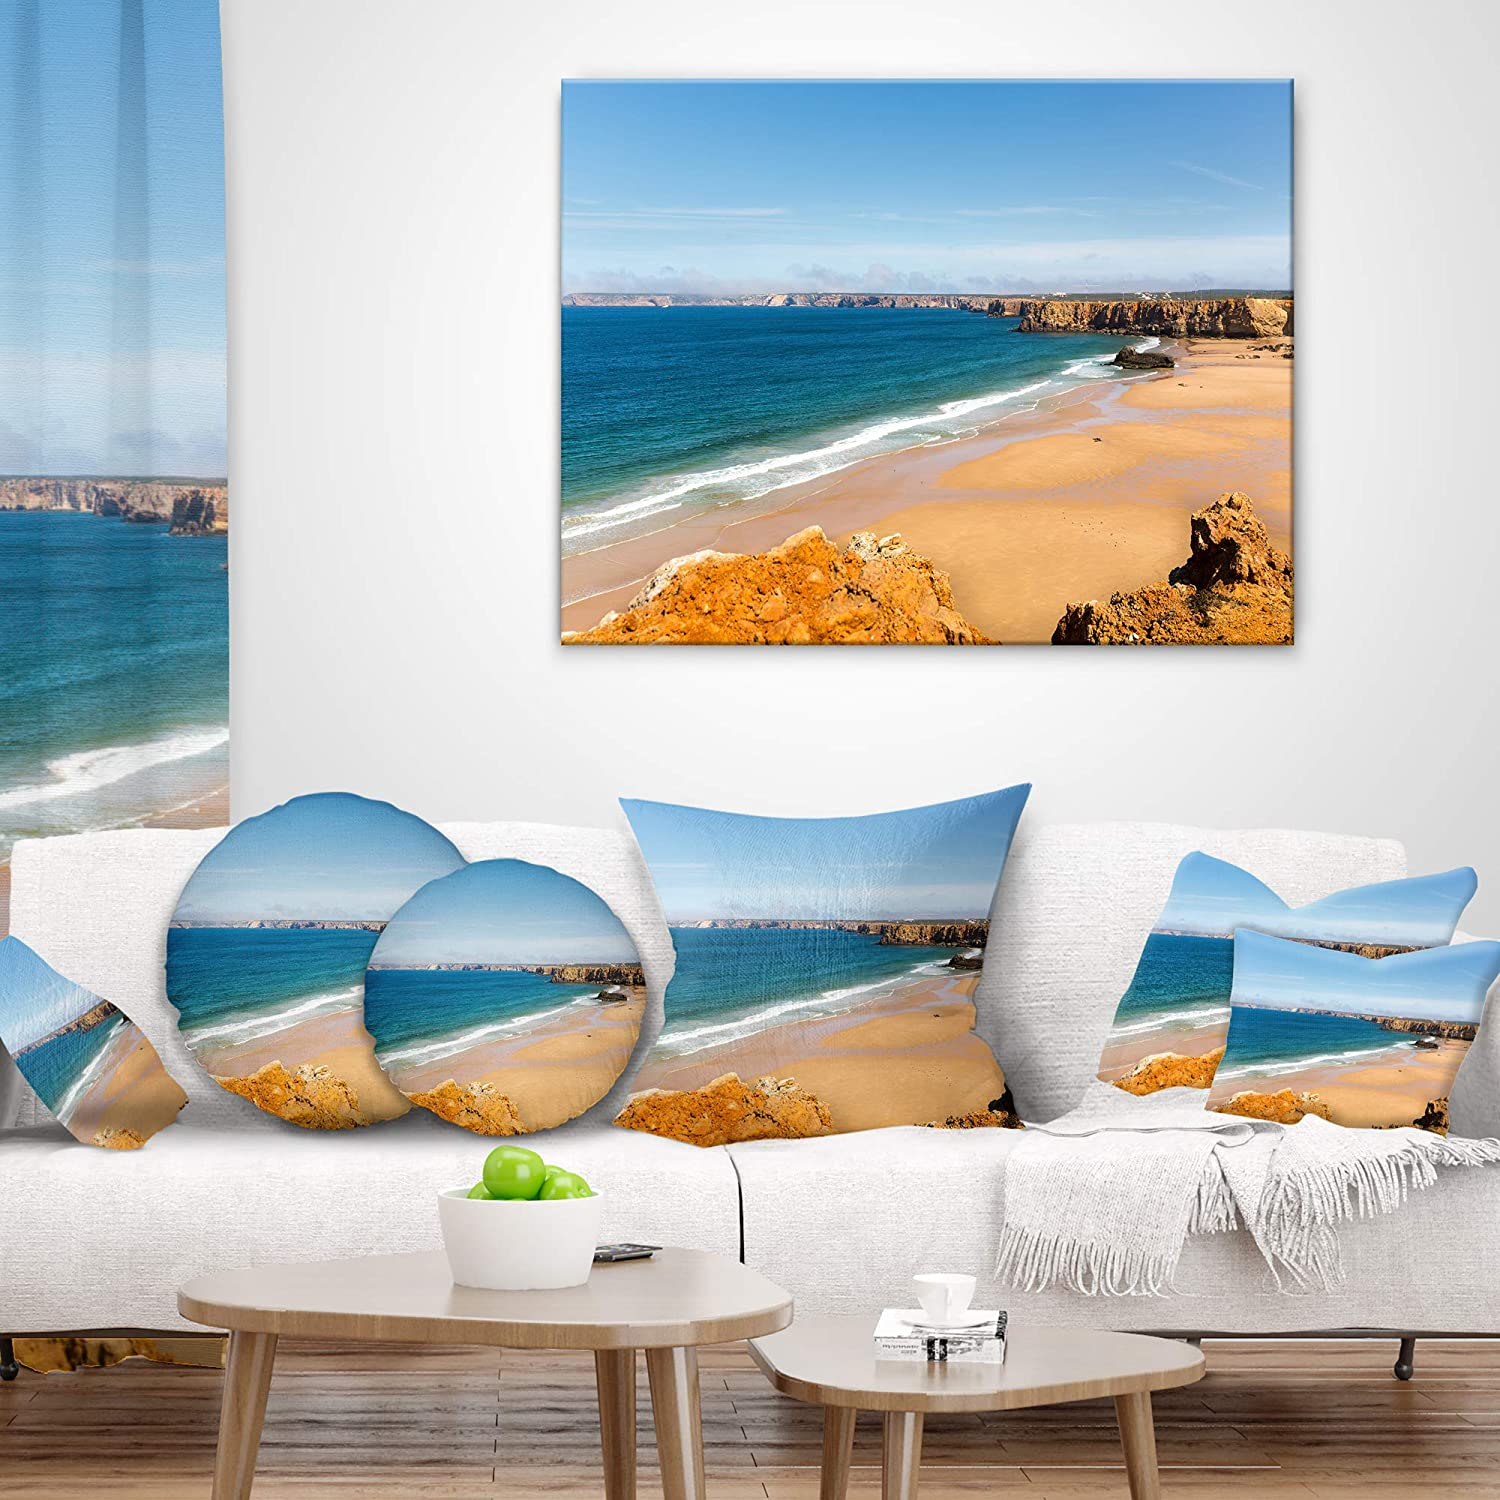 in Designart CU11110-26-26 Serene Rocky Bay Portugal Seashore Cushion Cover for Living Room x 26 in Sofa Throw Pillow 26 in Insert Printed On Both Side